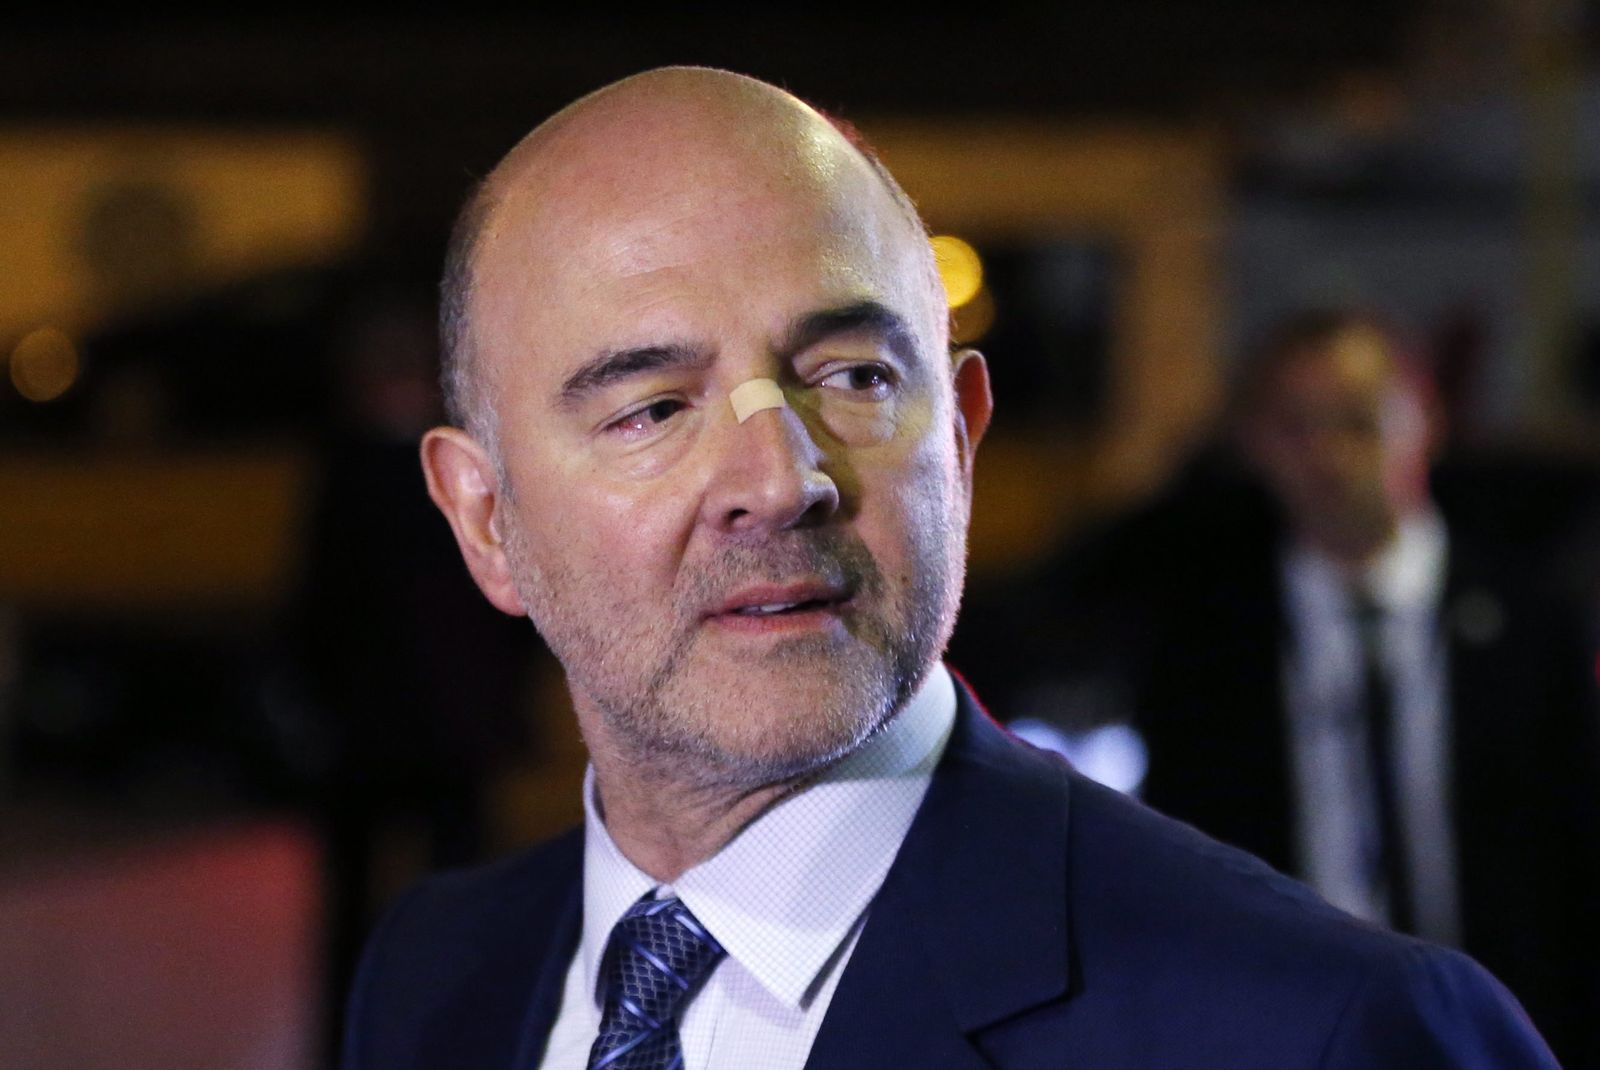 Griechenland/ Finanzkrise/ Moscovici